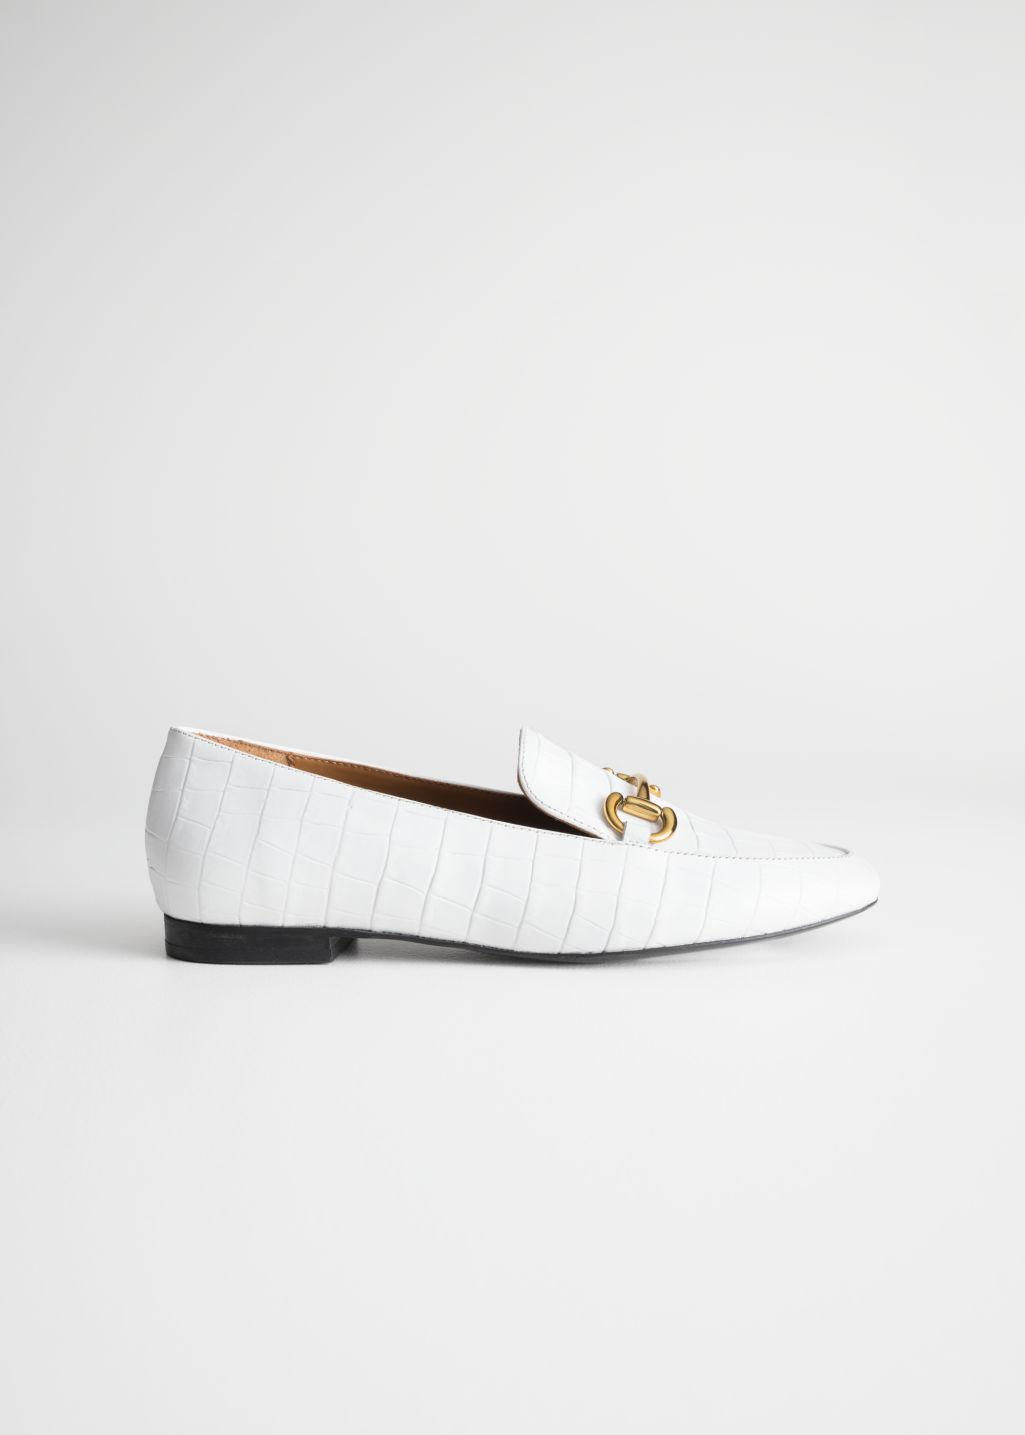 8a87319b45b   Other Stories Equestrian Buckle Loafers in White - Lyst